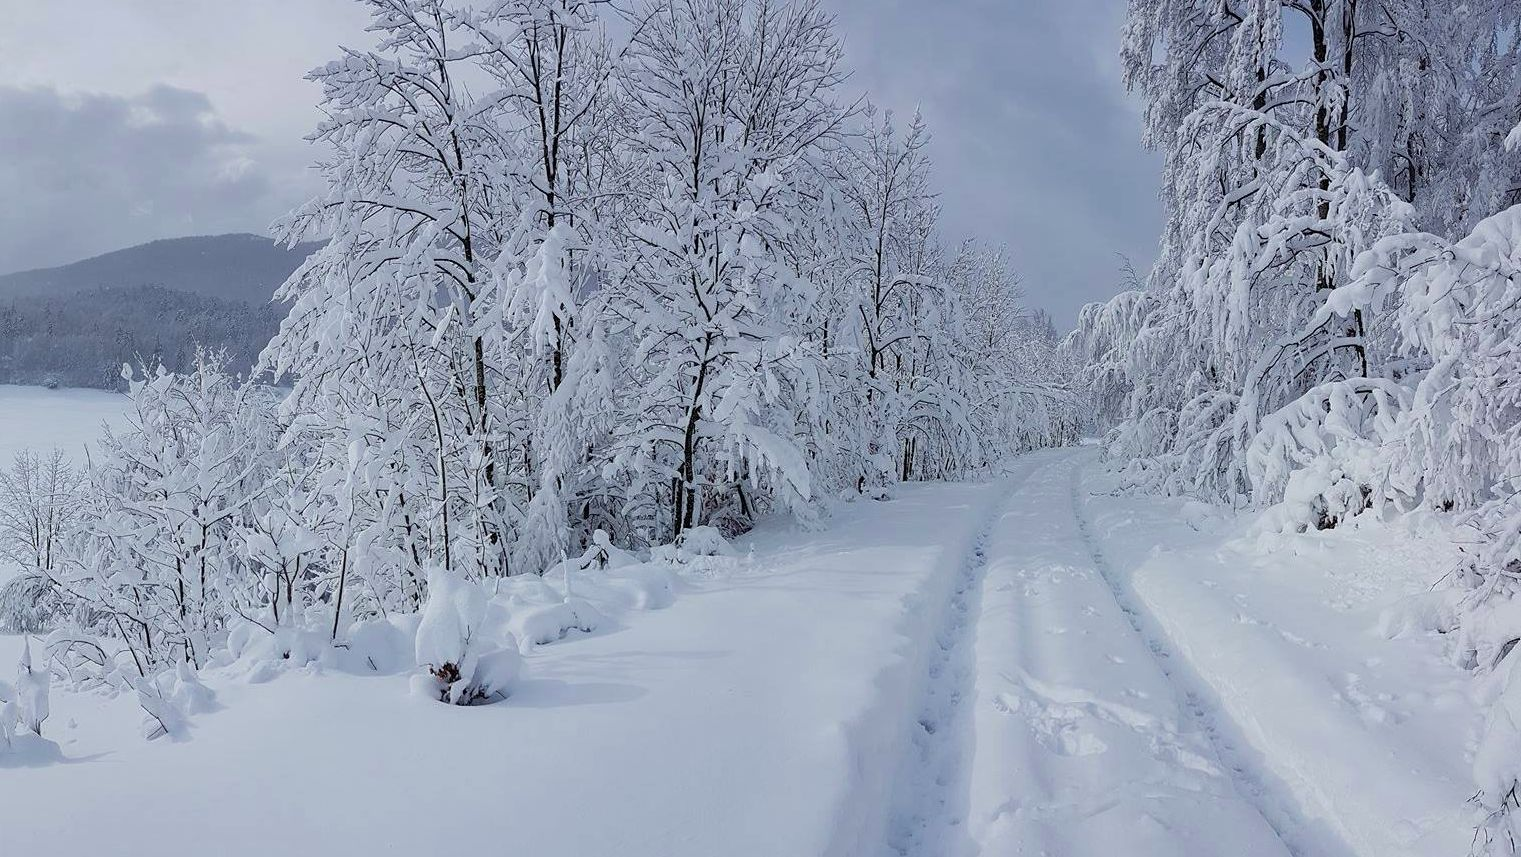 [PHOTOS] Winter Arrives with Stunning Snow Fall for Parts of Croatia